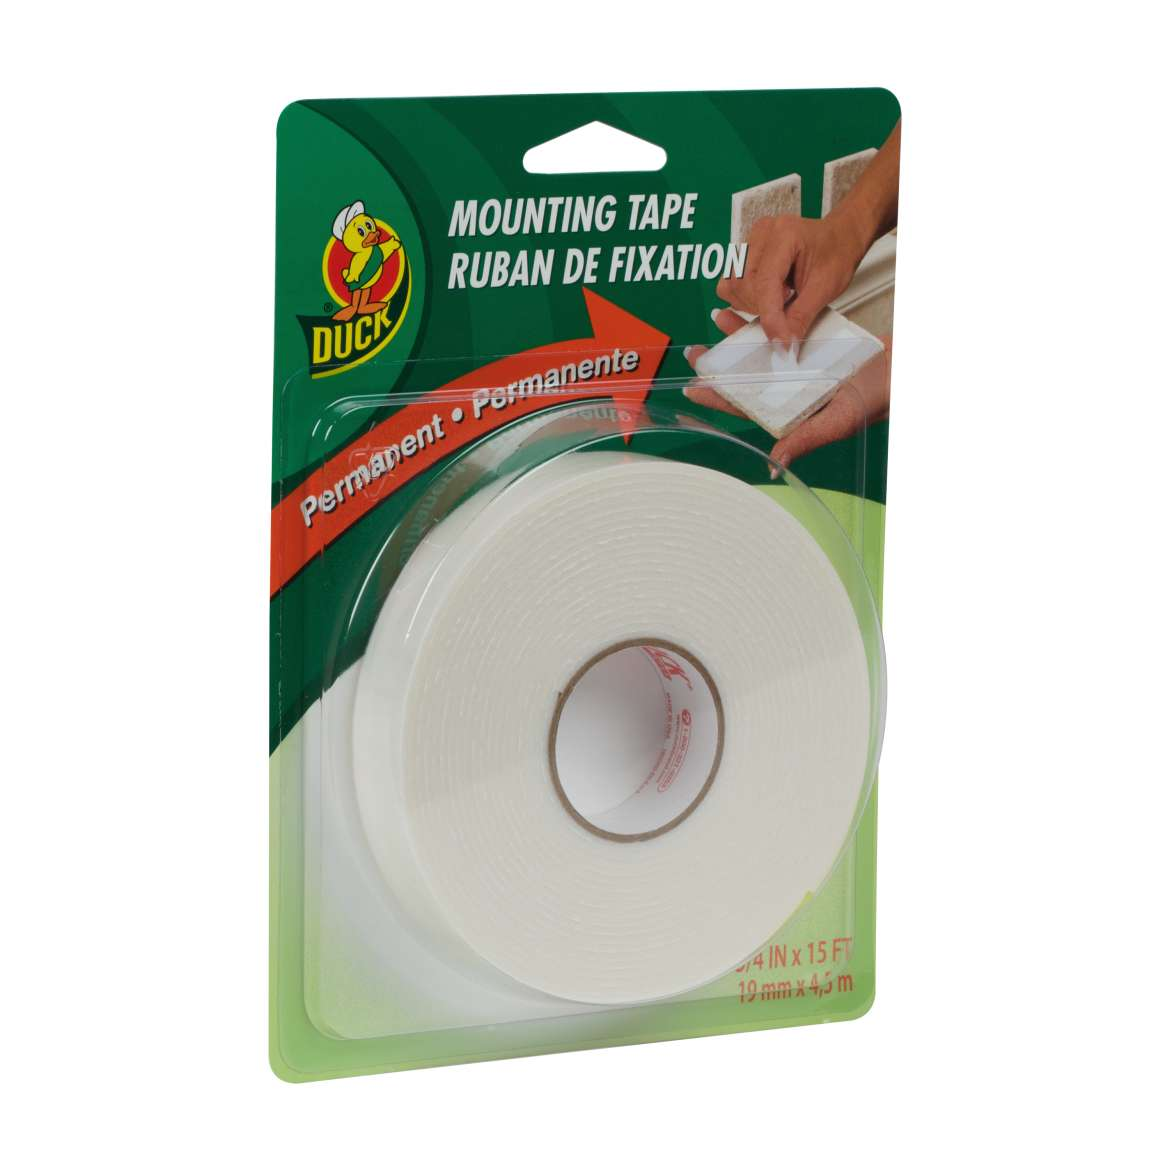 Duck Brand Permanent Mounting Tape - White, .75 in. x 15 ft.